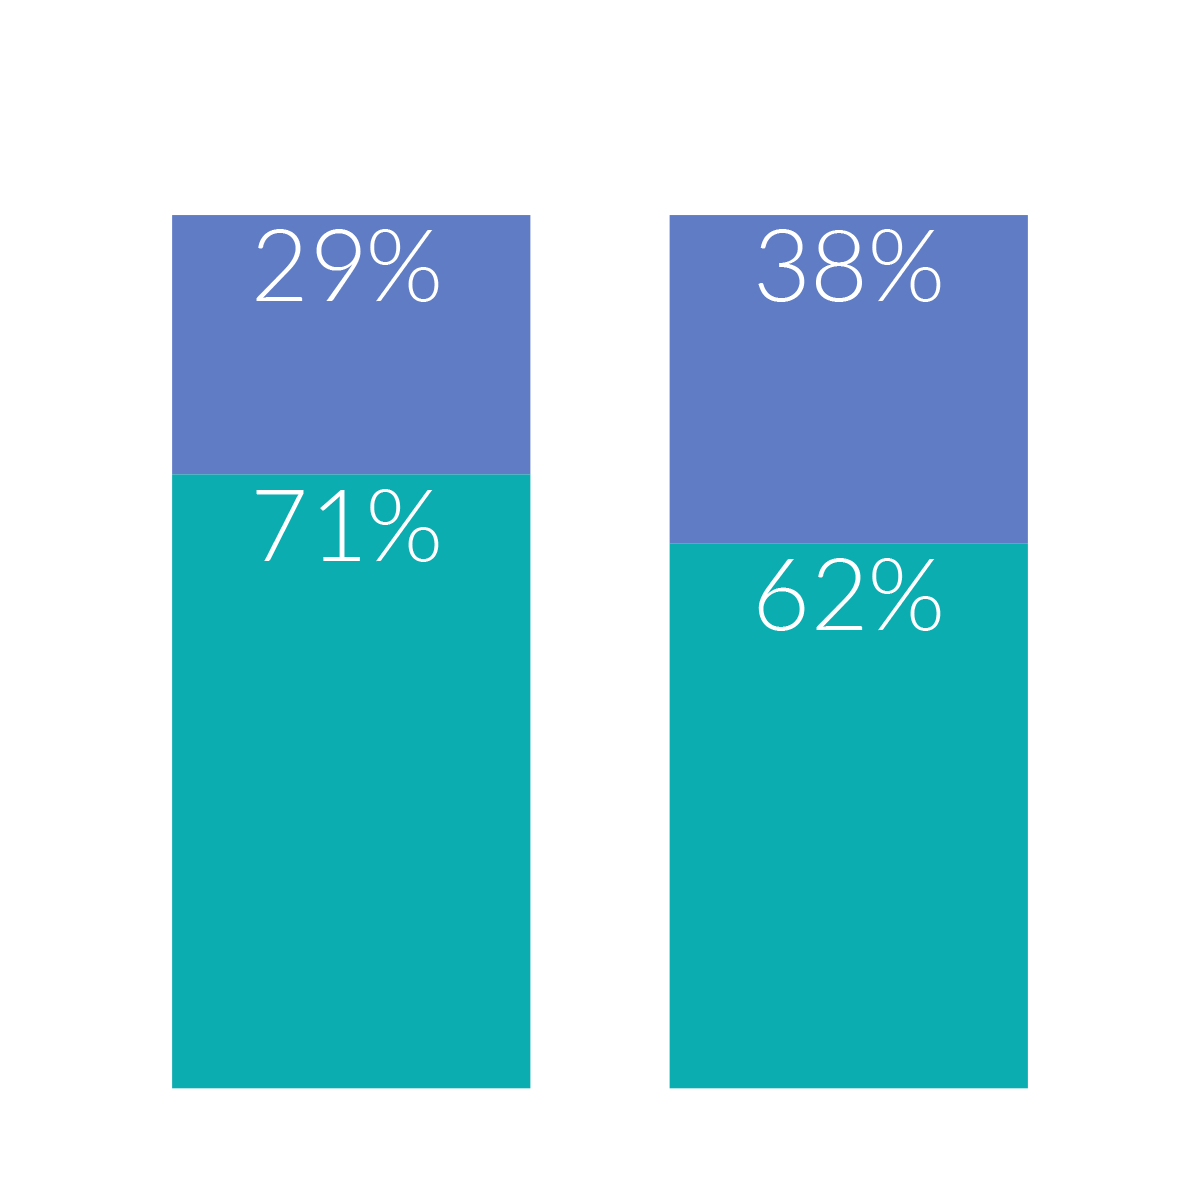 71% of hetero singles want a serious relationship compared to 62% of LGBTQ+ singles.